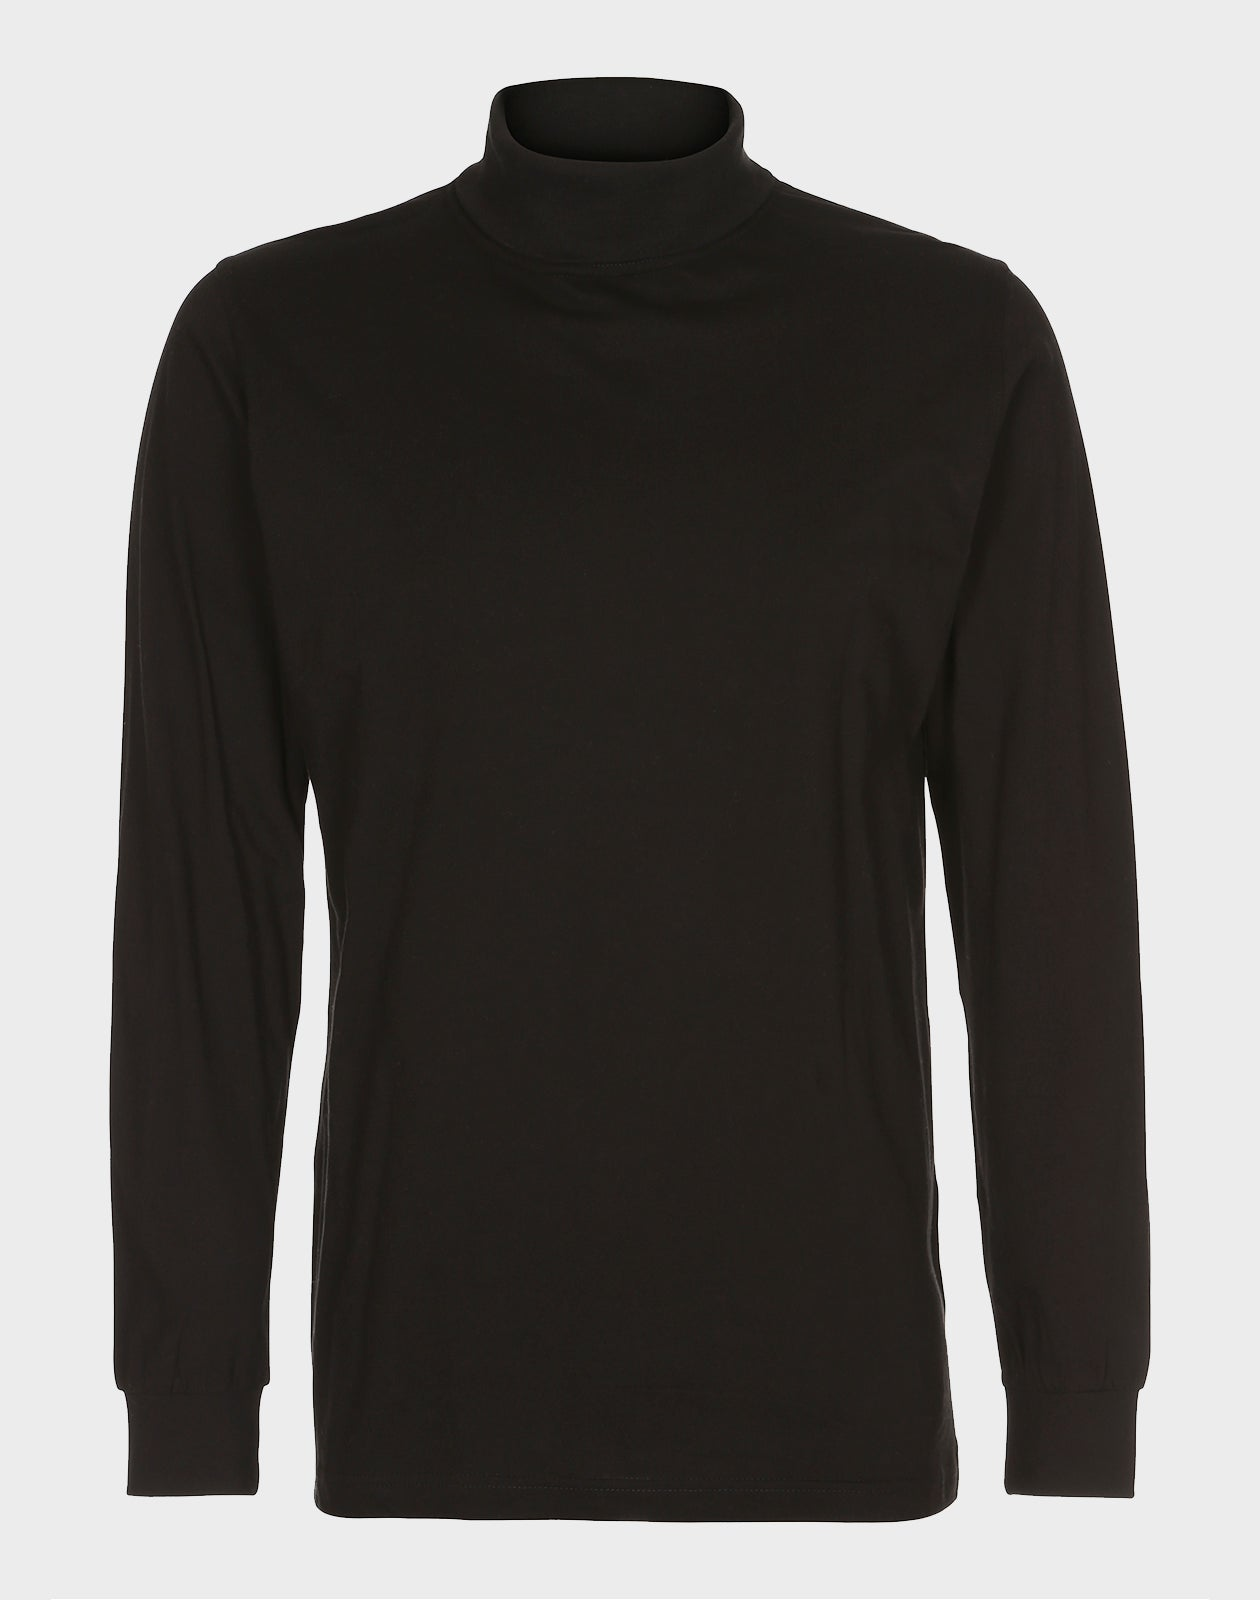 Fitted Fit - Turtle Neck Tee, Sort T-shirt - ACC Store